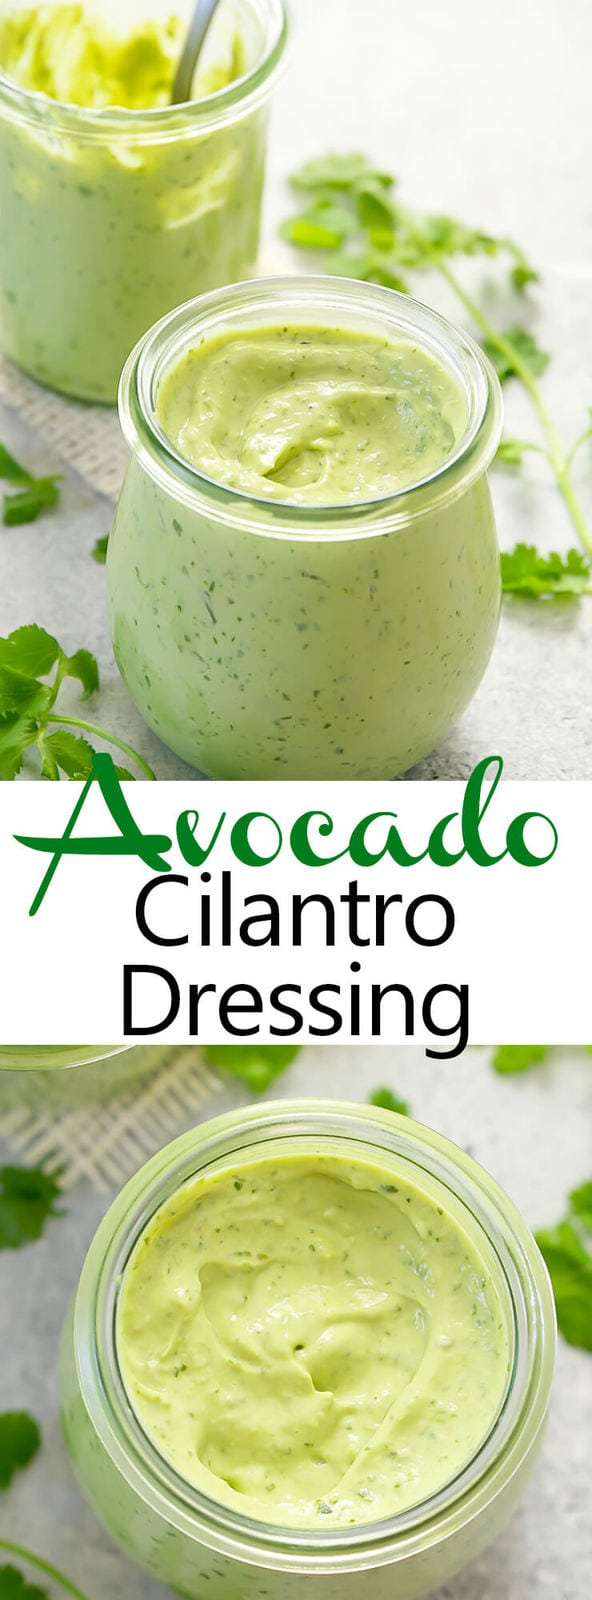 Avocado Cilantro Dressing. An easy, healthy, creamy summer dressing that comes together in about 5 minutes.